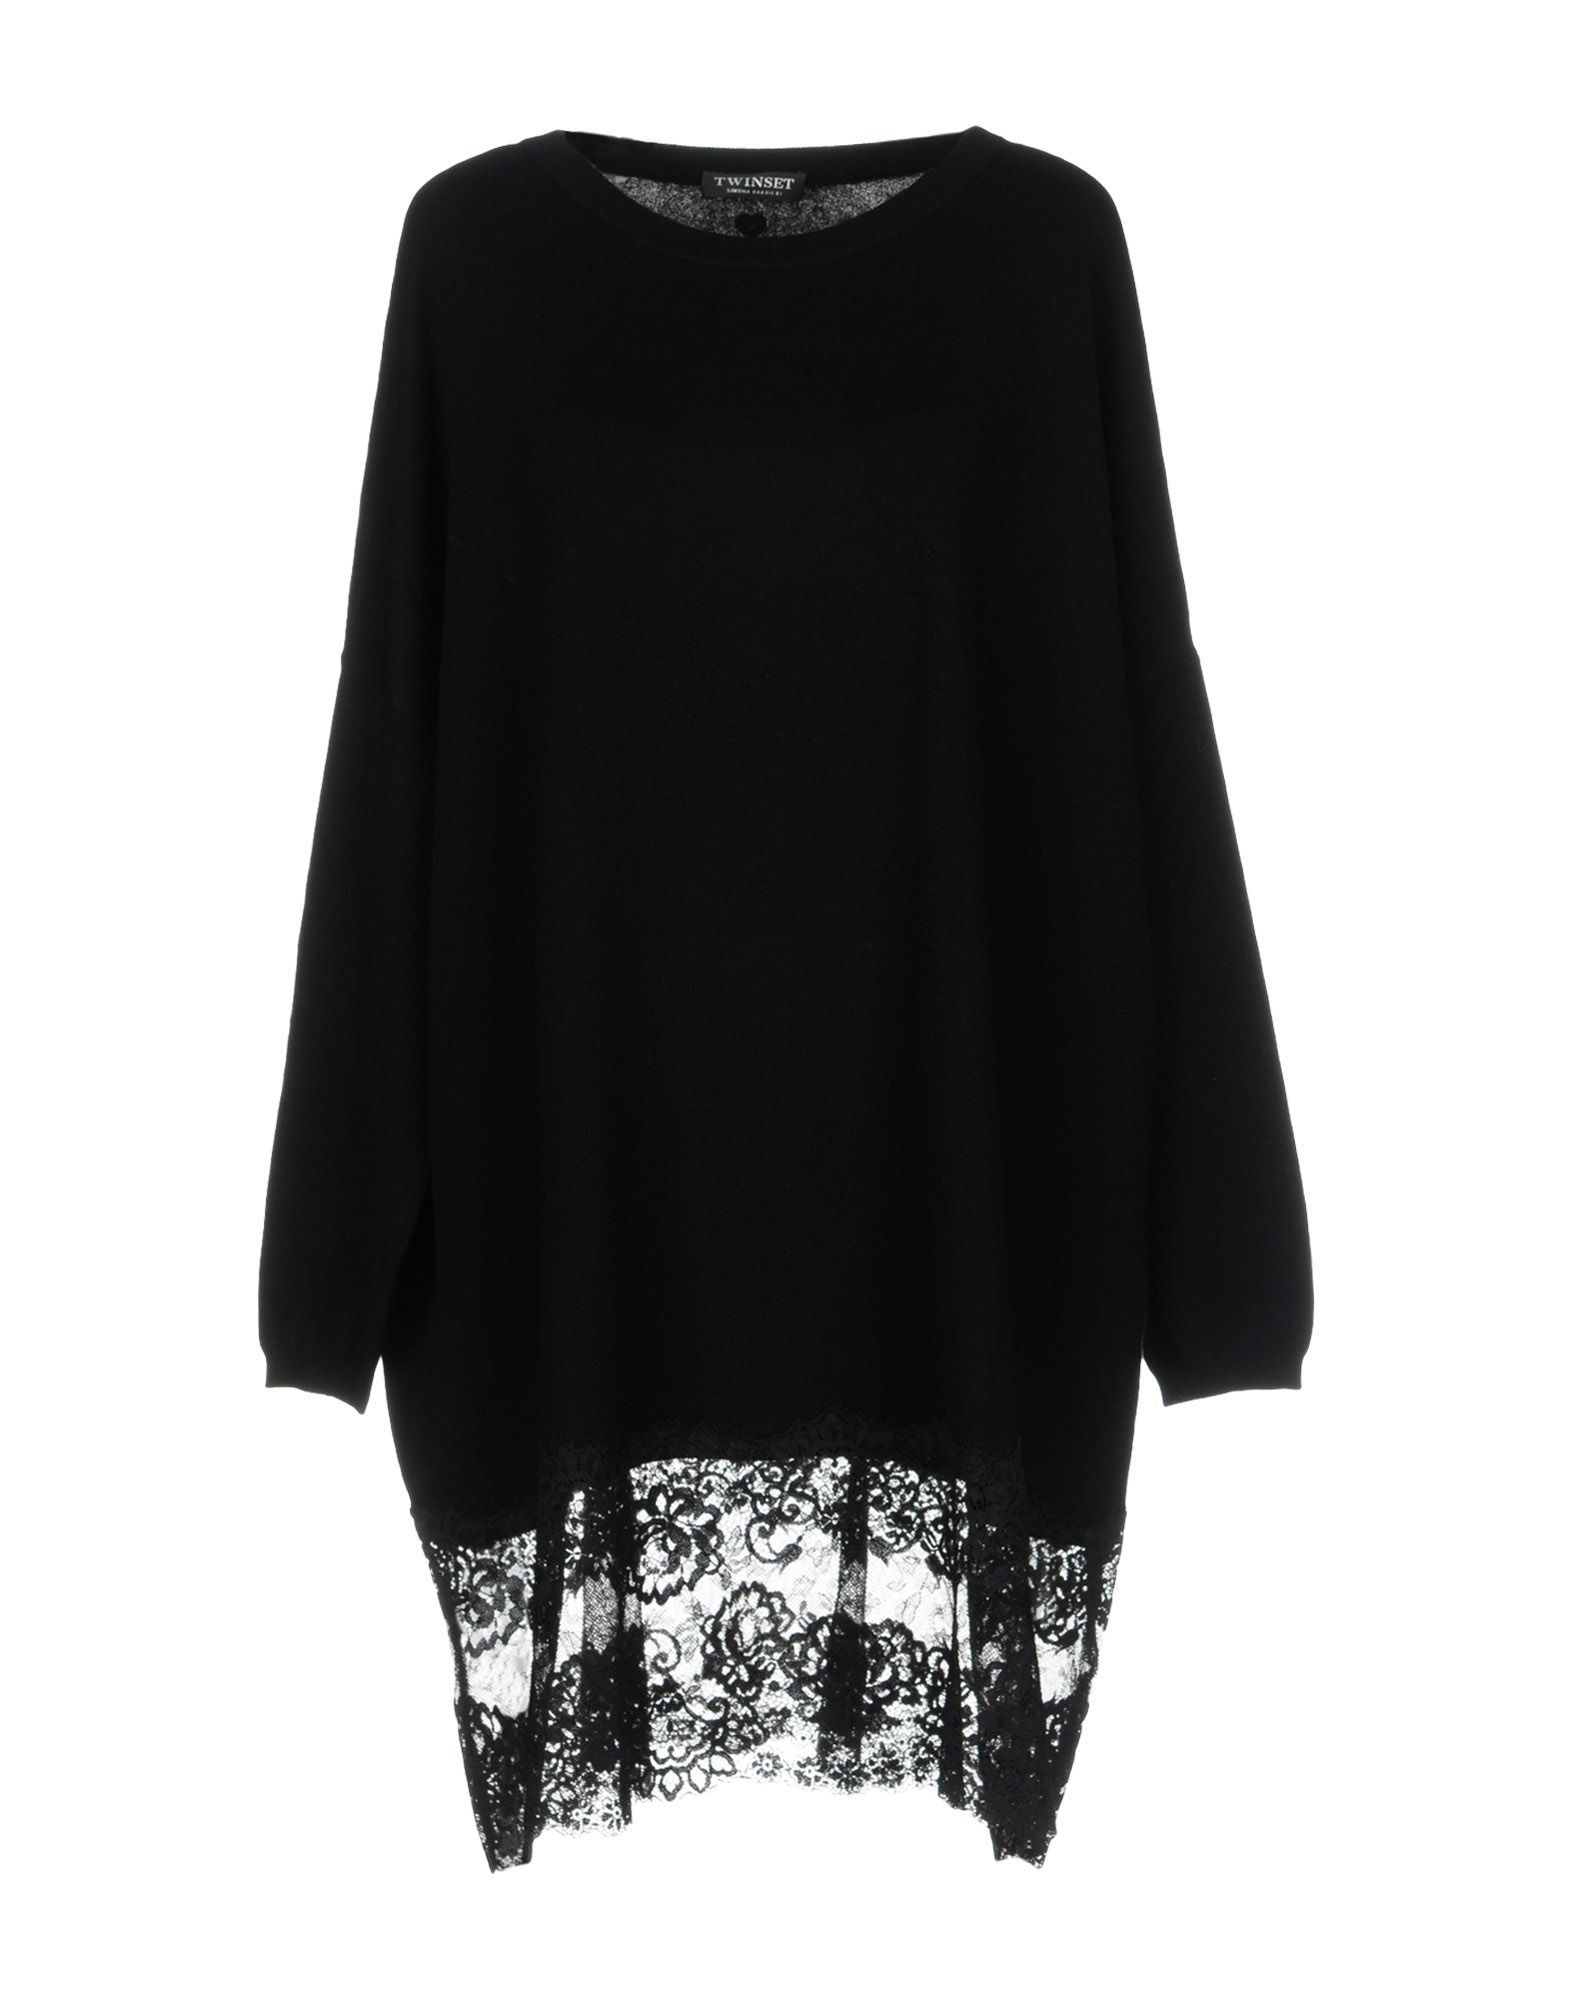 Twinset Black Cotton Knit Jumper With Lace Insert